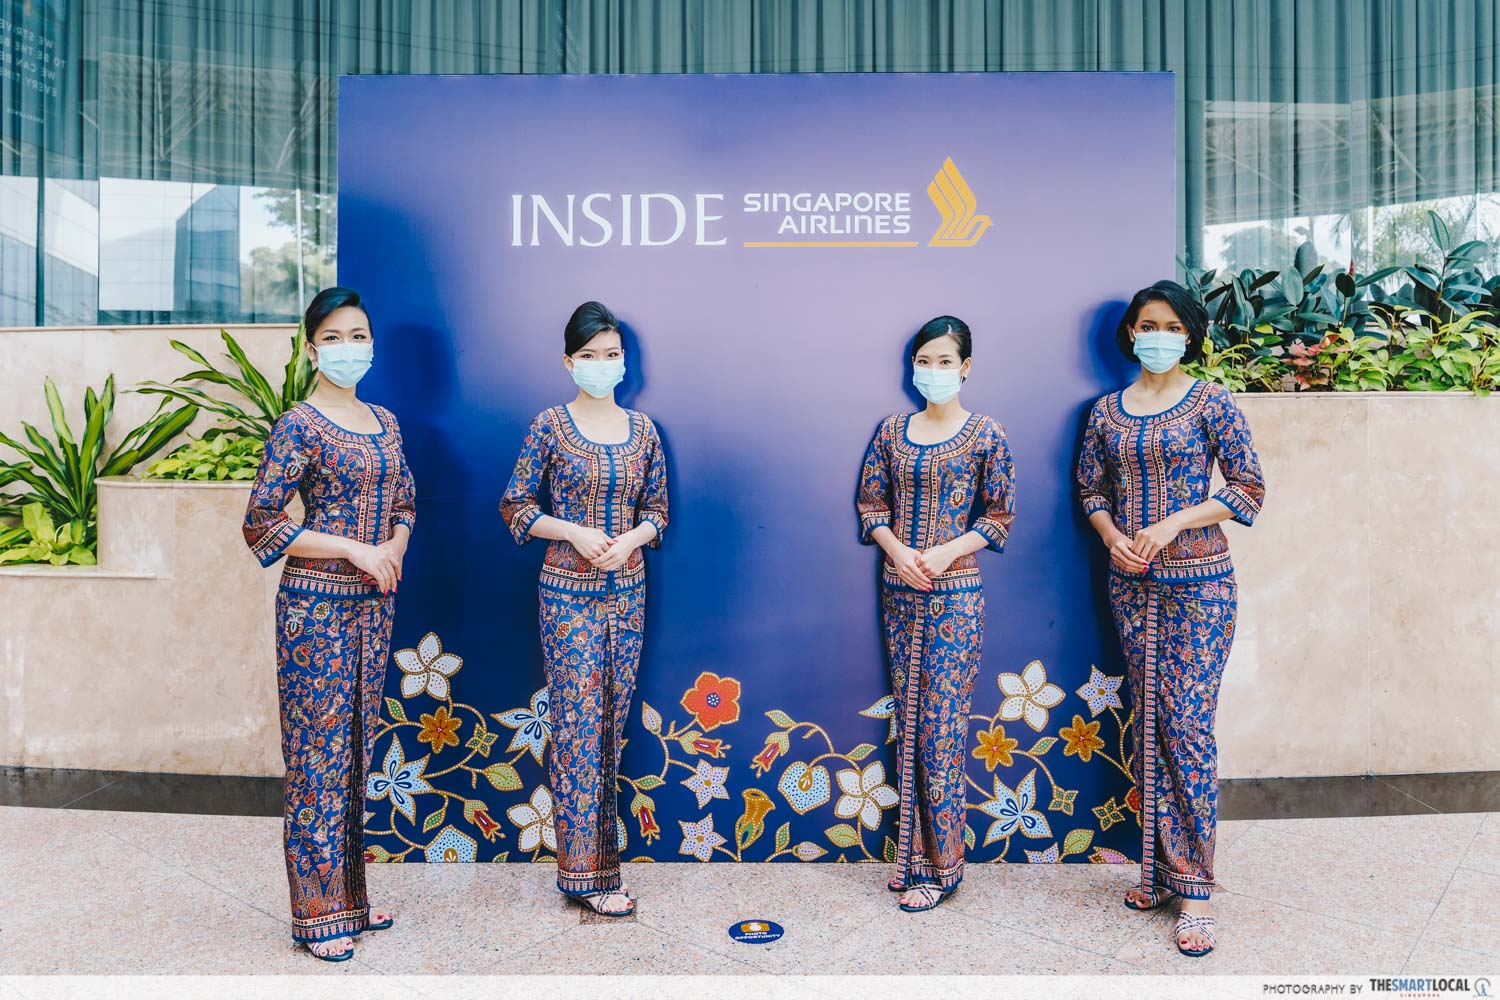 Inside Singapore Airlines tour